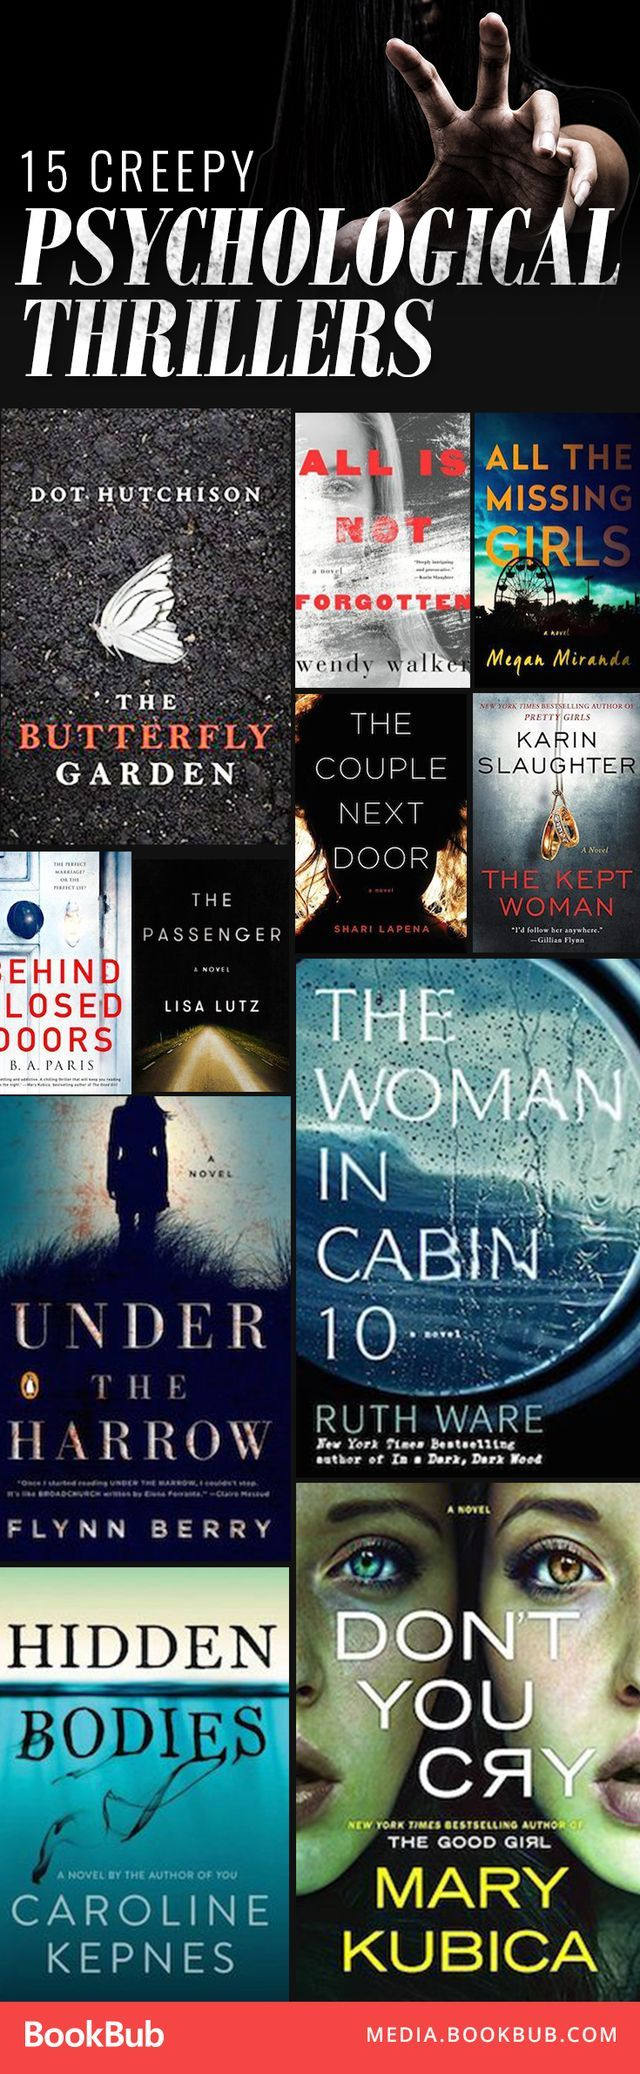 15 Chilling Psychological Thrillers To Read This Halloween  15 Creepy  Psychological Thrillers Worth A Read